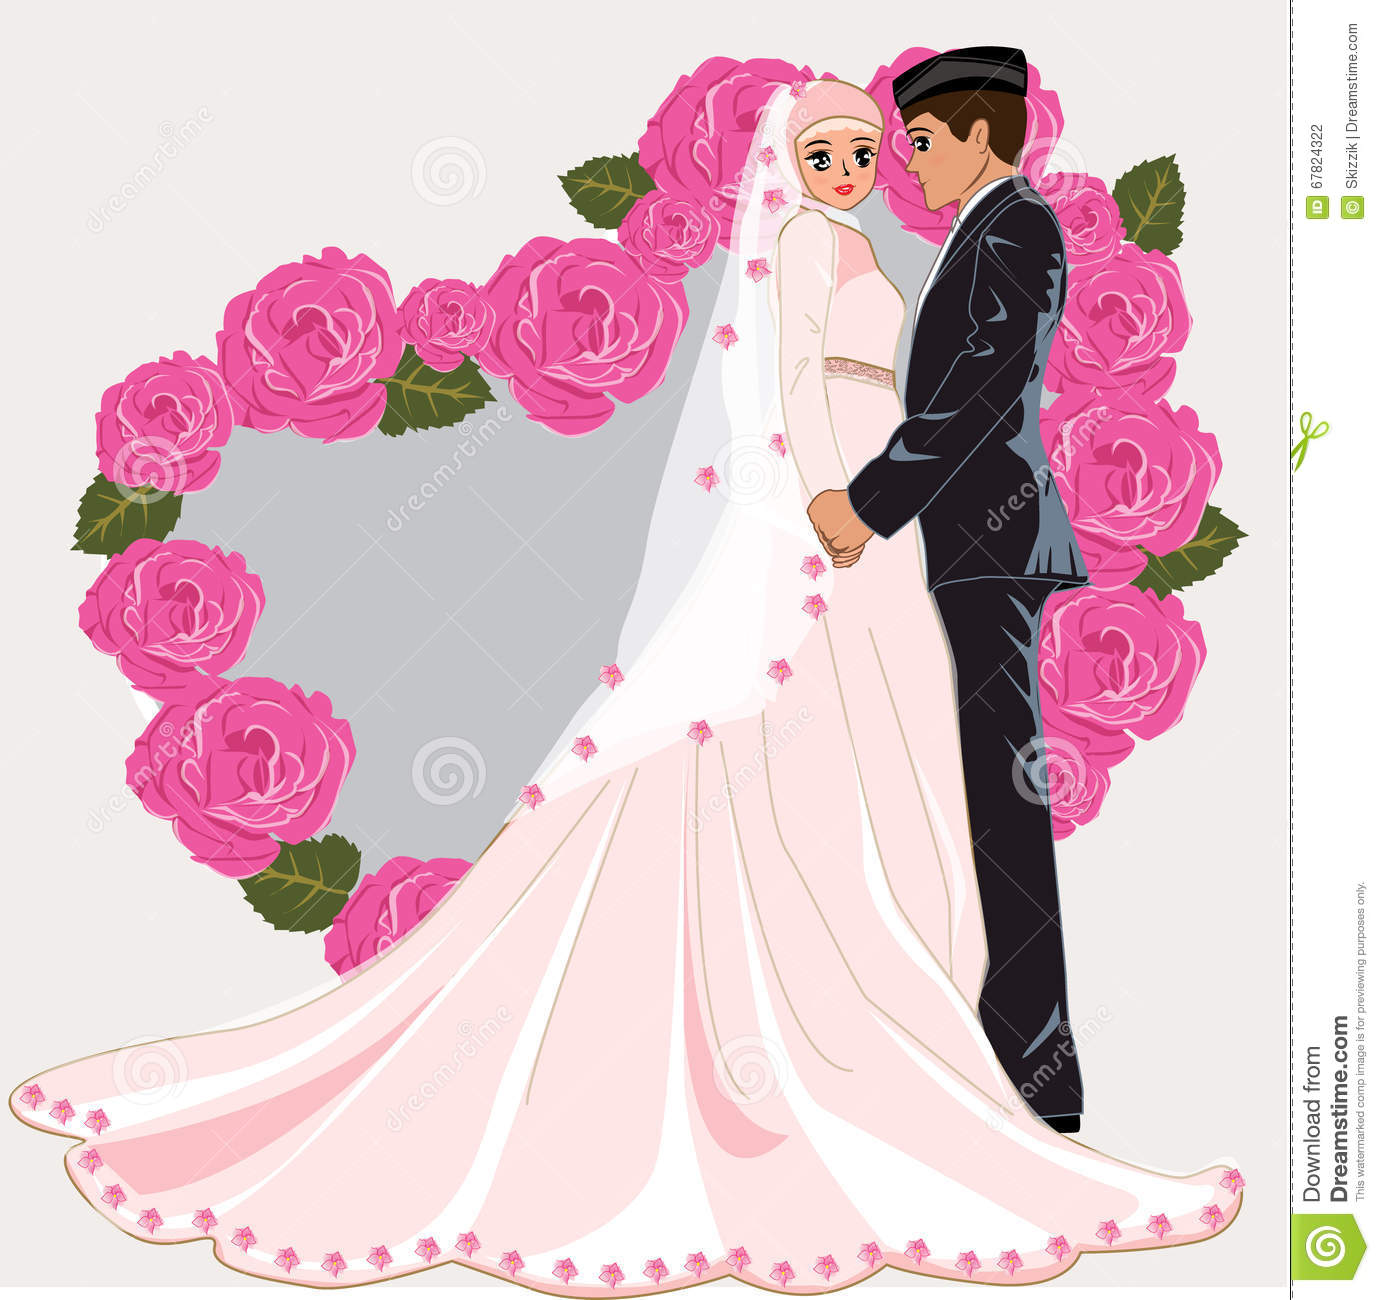 happy jack muslim dating site Find your muslim life partner trusted site used by over 45 million muslims worldwide review your matches join free.